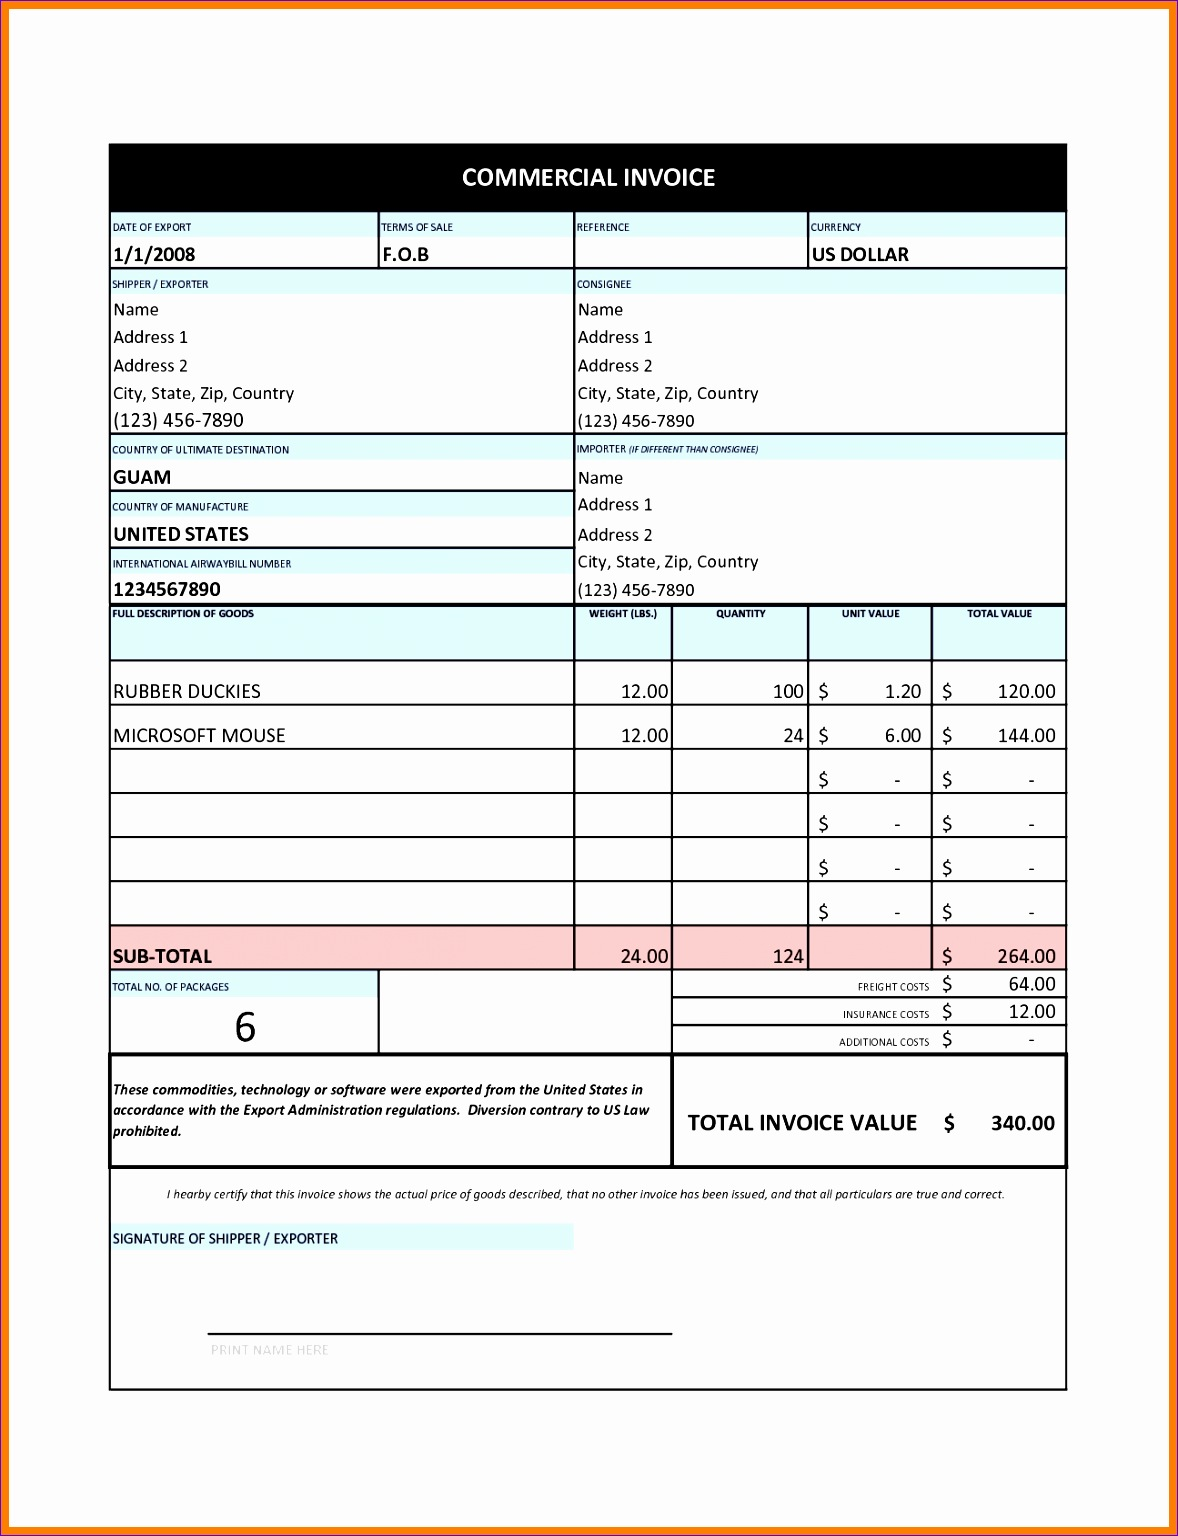 invoice format in excel sheet tax invoice format in excel free invoice template free 2016 invoice format dkj7